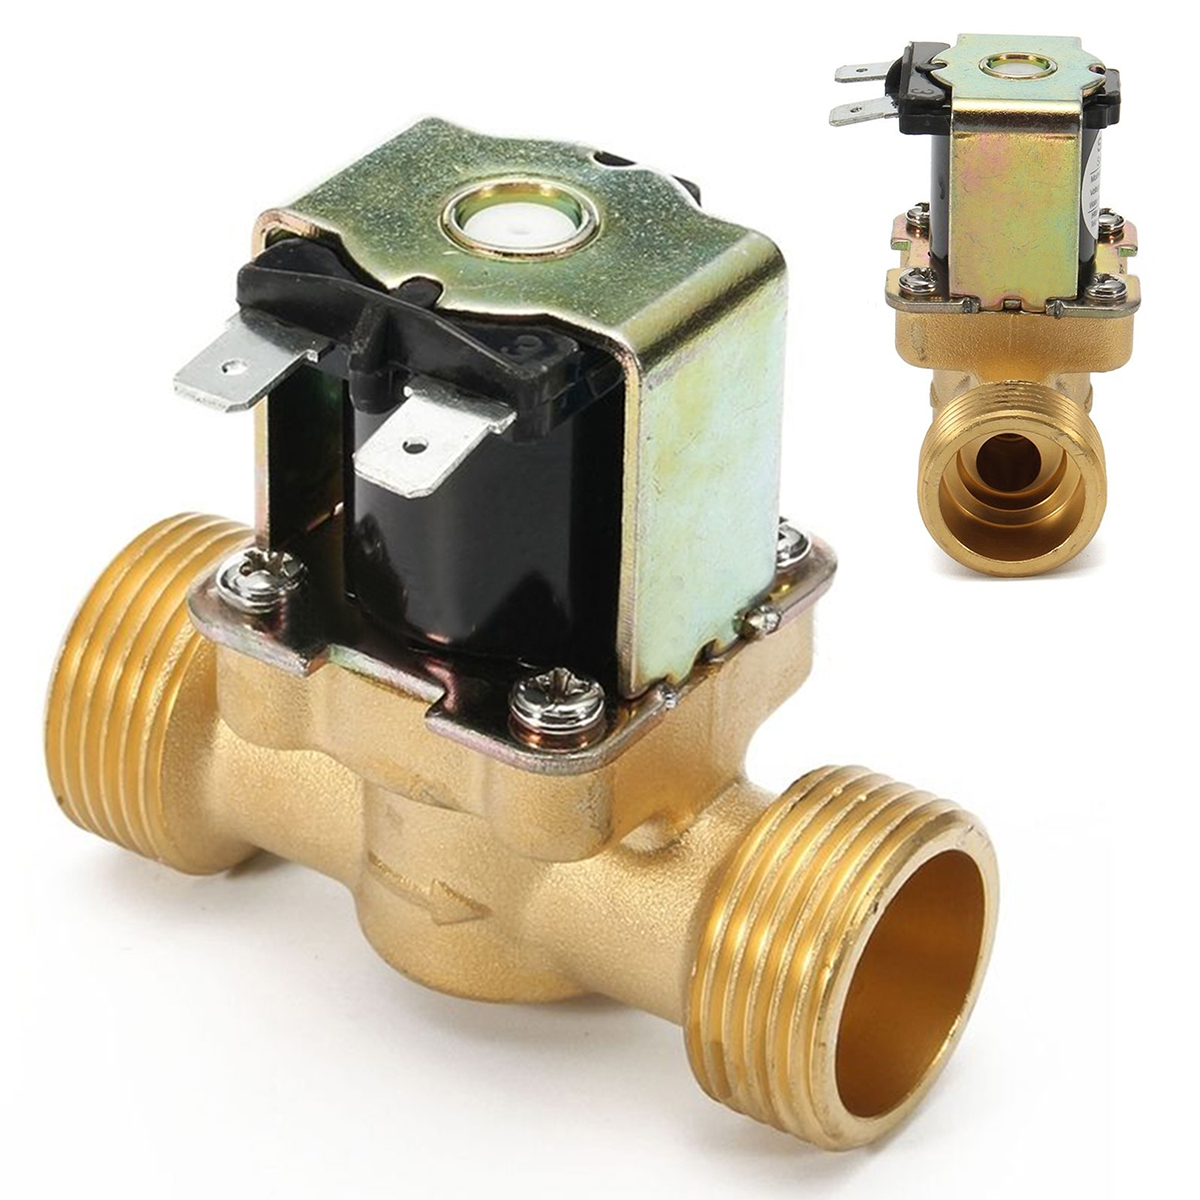 New 3/4 INCH NPSM 12V DC Slim Brass Electric Solenoid Valve Gas Water Air Normally Closed 2 Way 2 Position Diaphragm ValvesNew 3/4 INCH NPSM 12V DC Slim Brass Electric Solenoid Valve Gas Water Air Normally Closed 2 Way 2 Position Diaphragm Valves